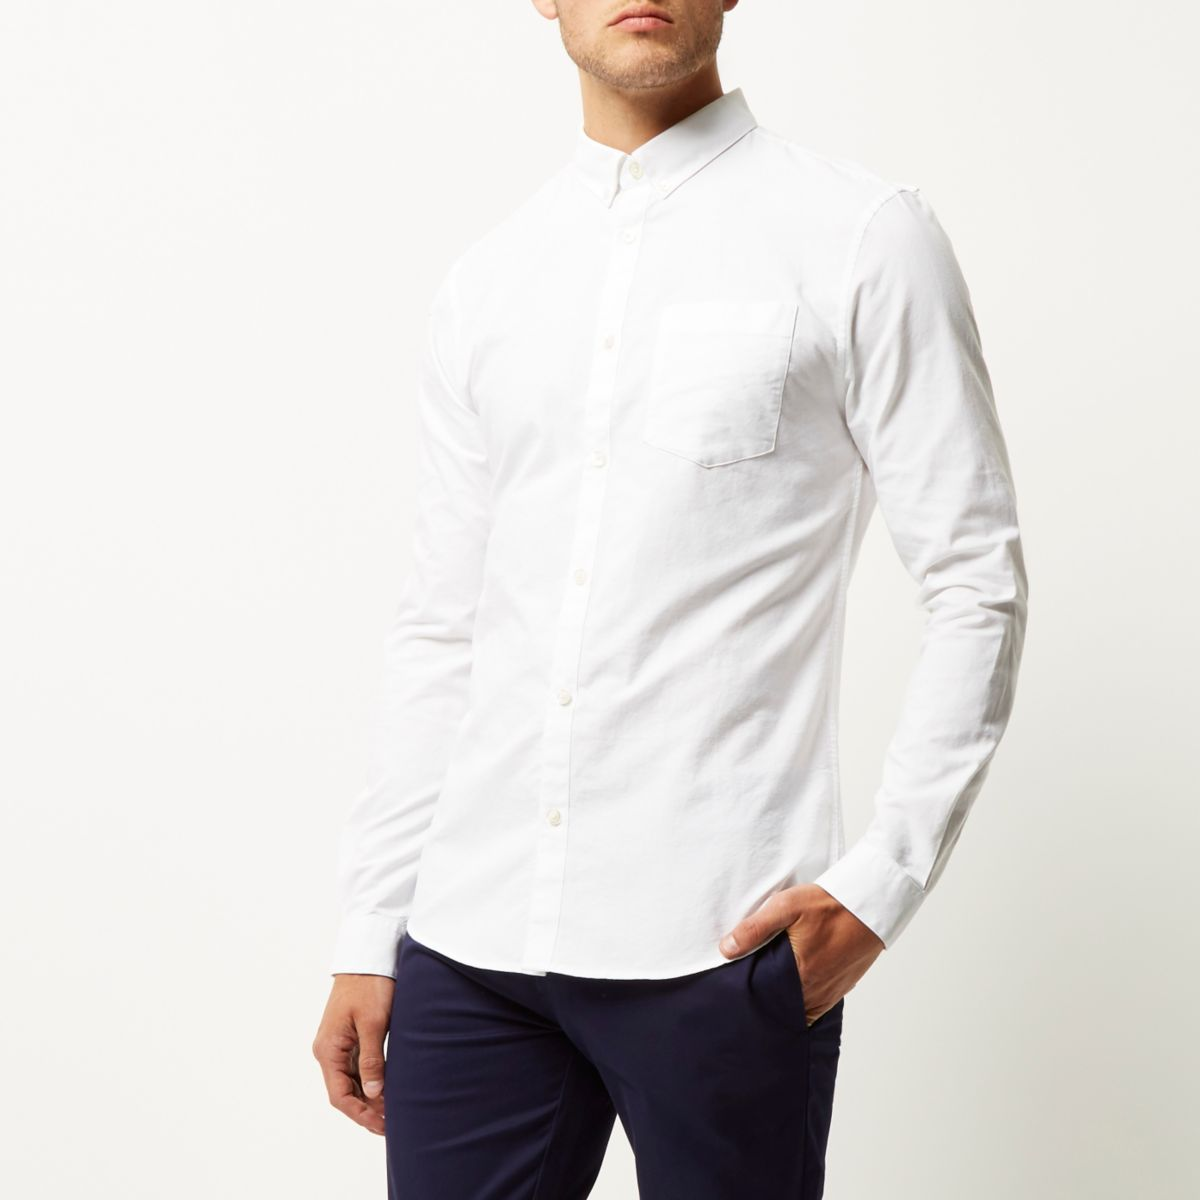 Find great deals on eBay for slim fit white shirt. Shop with confidence.